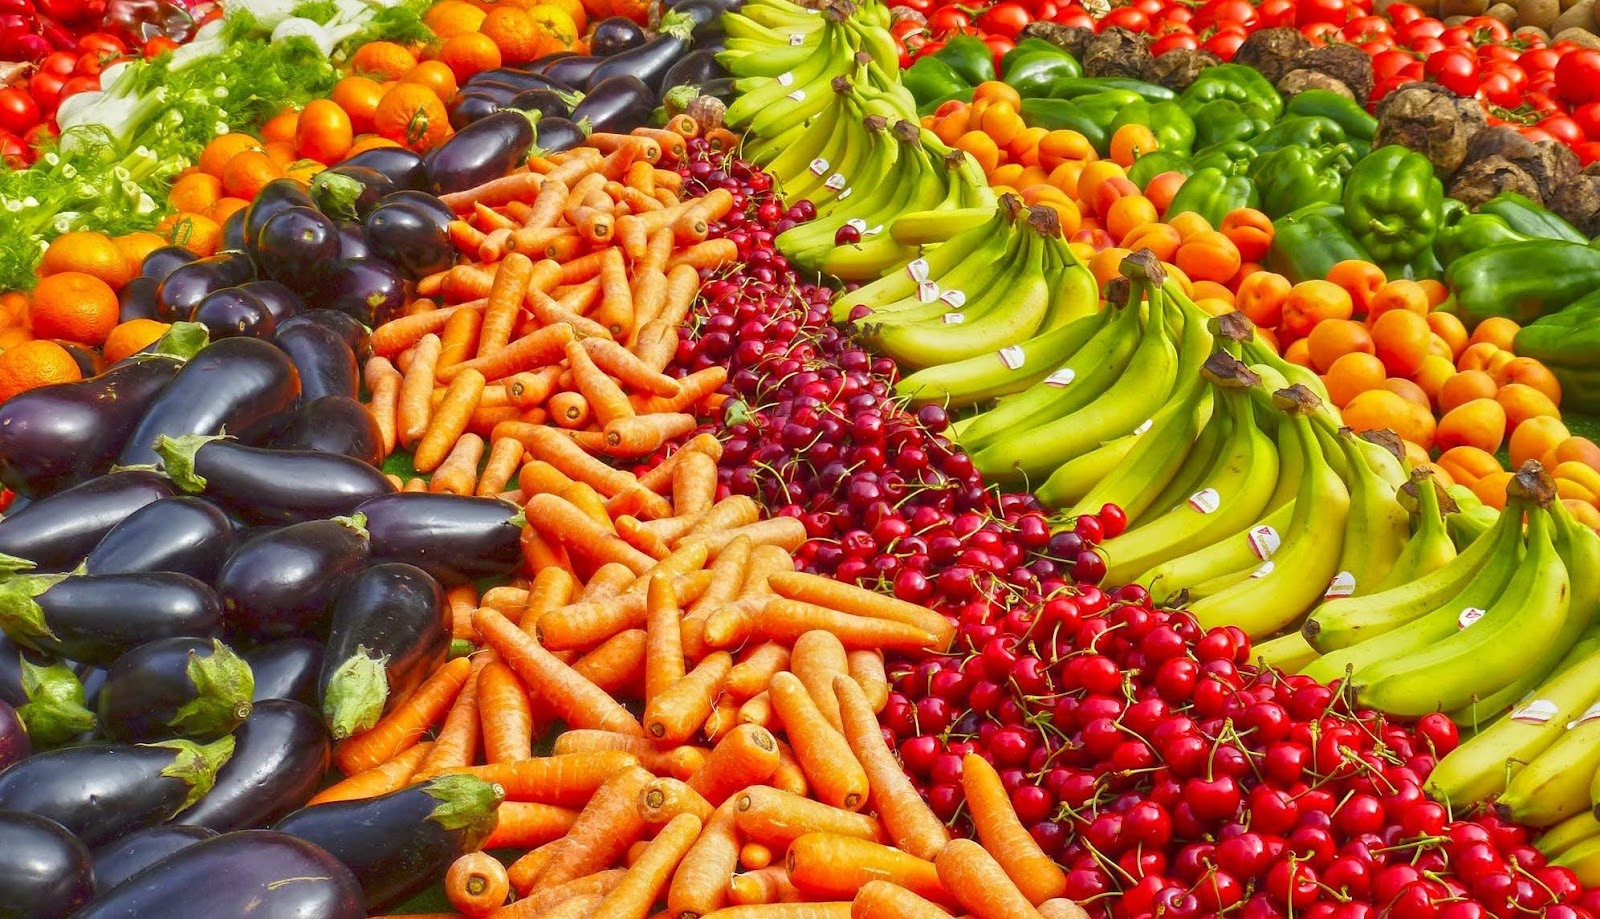 Eating a fruit and vegetable rainbow is one of the best ways to reduce workplace stress